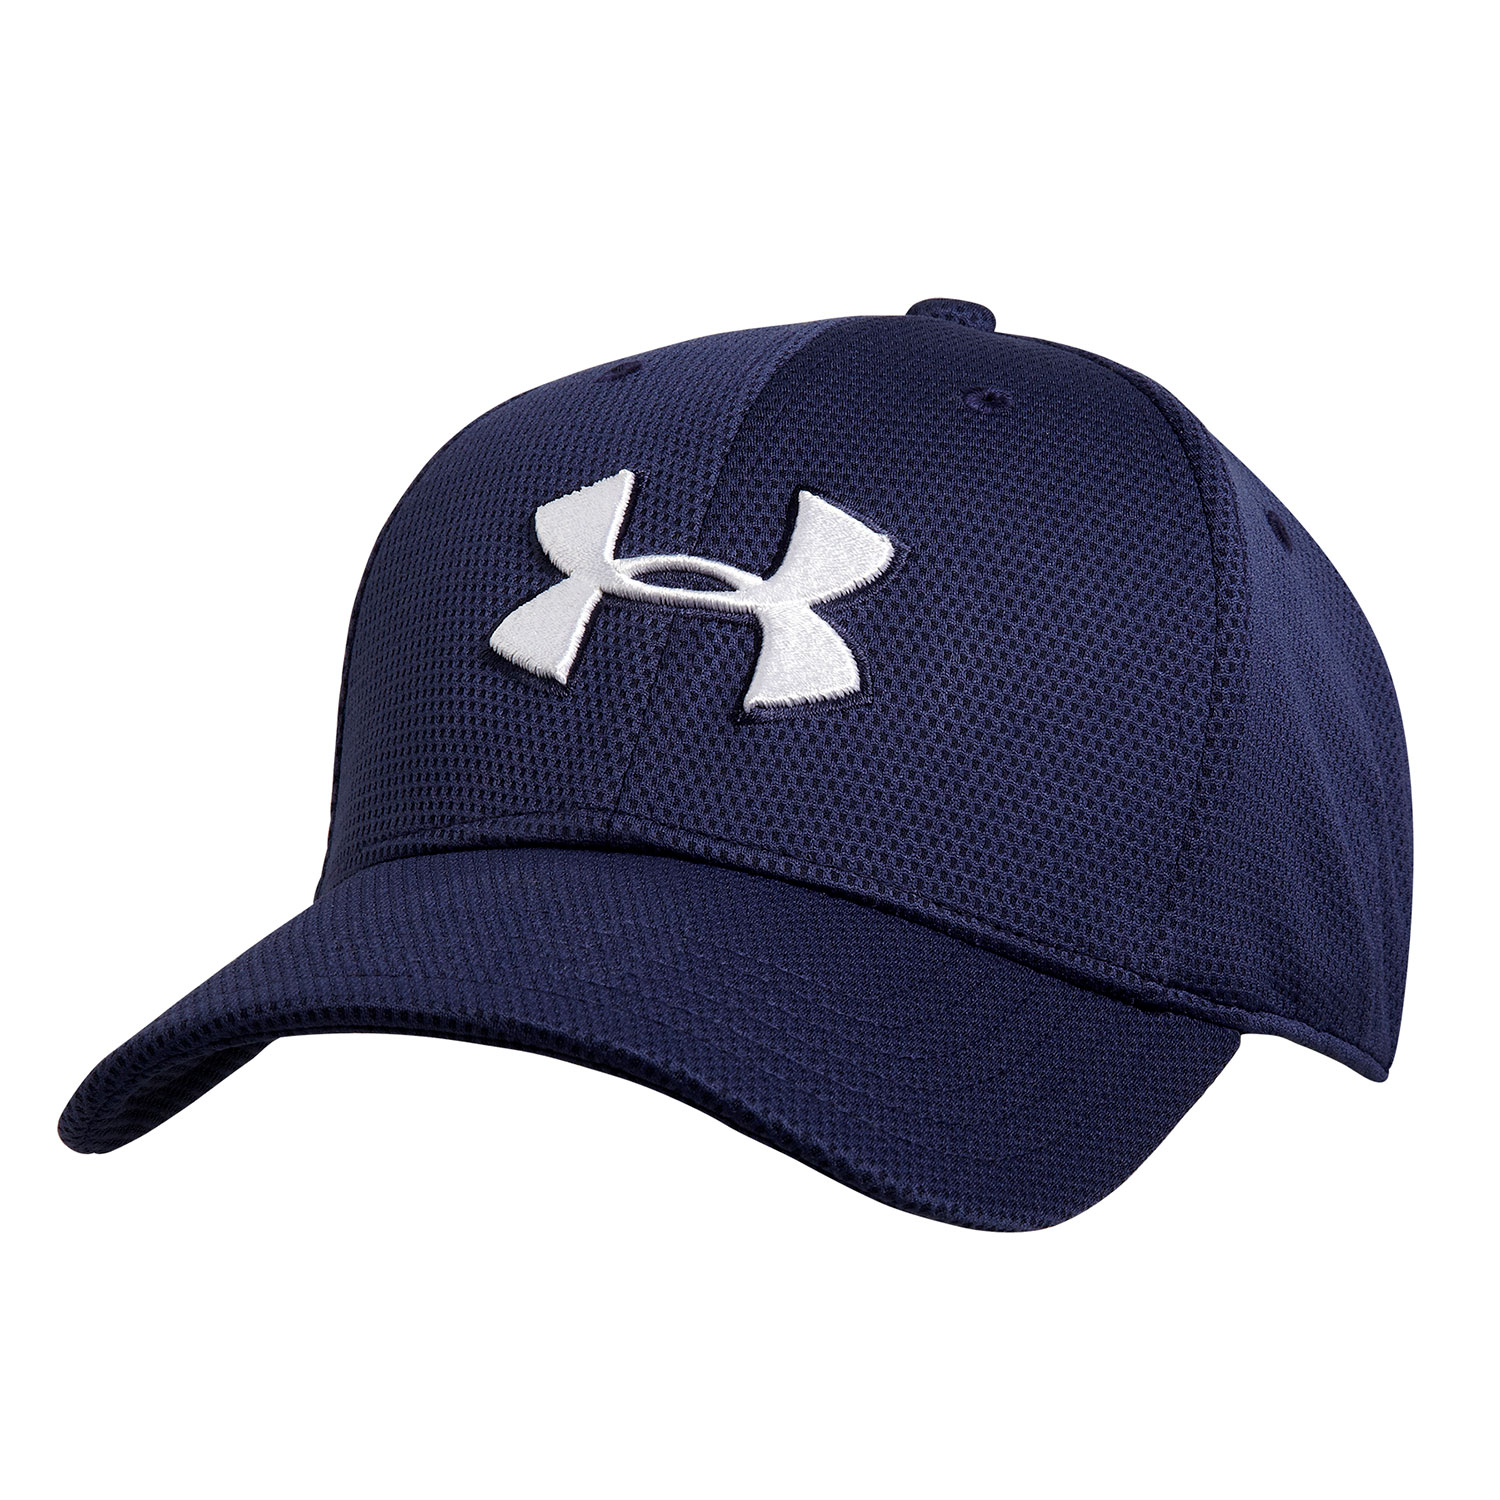 084c7797514 Under Armour Blitzing II Stretch Fit Cap